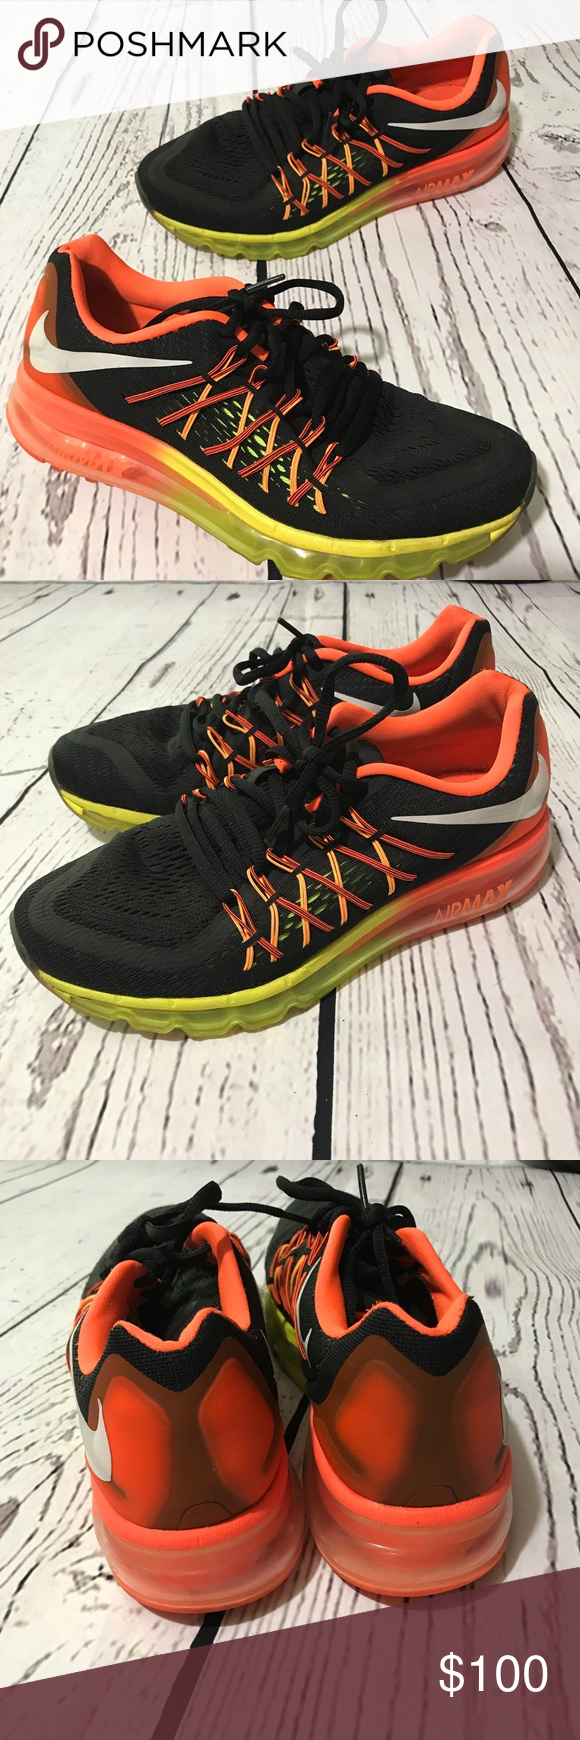 size 40 bddea 372e6 Nike Air Max 2015 Youth Size 7Y (women 8) Like NEW Nike Air Max 2015 Youth  Size 7Y (women 8) Used, only worn once, Excellent Condition Like New!!!